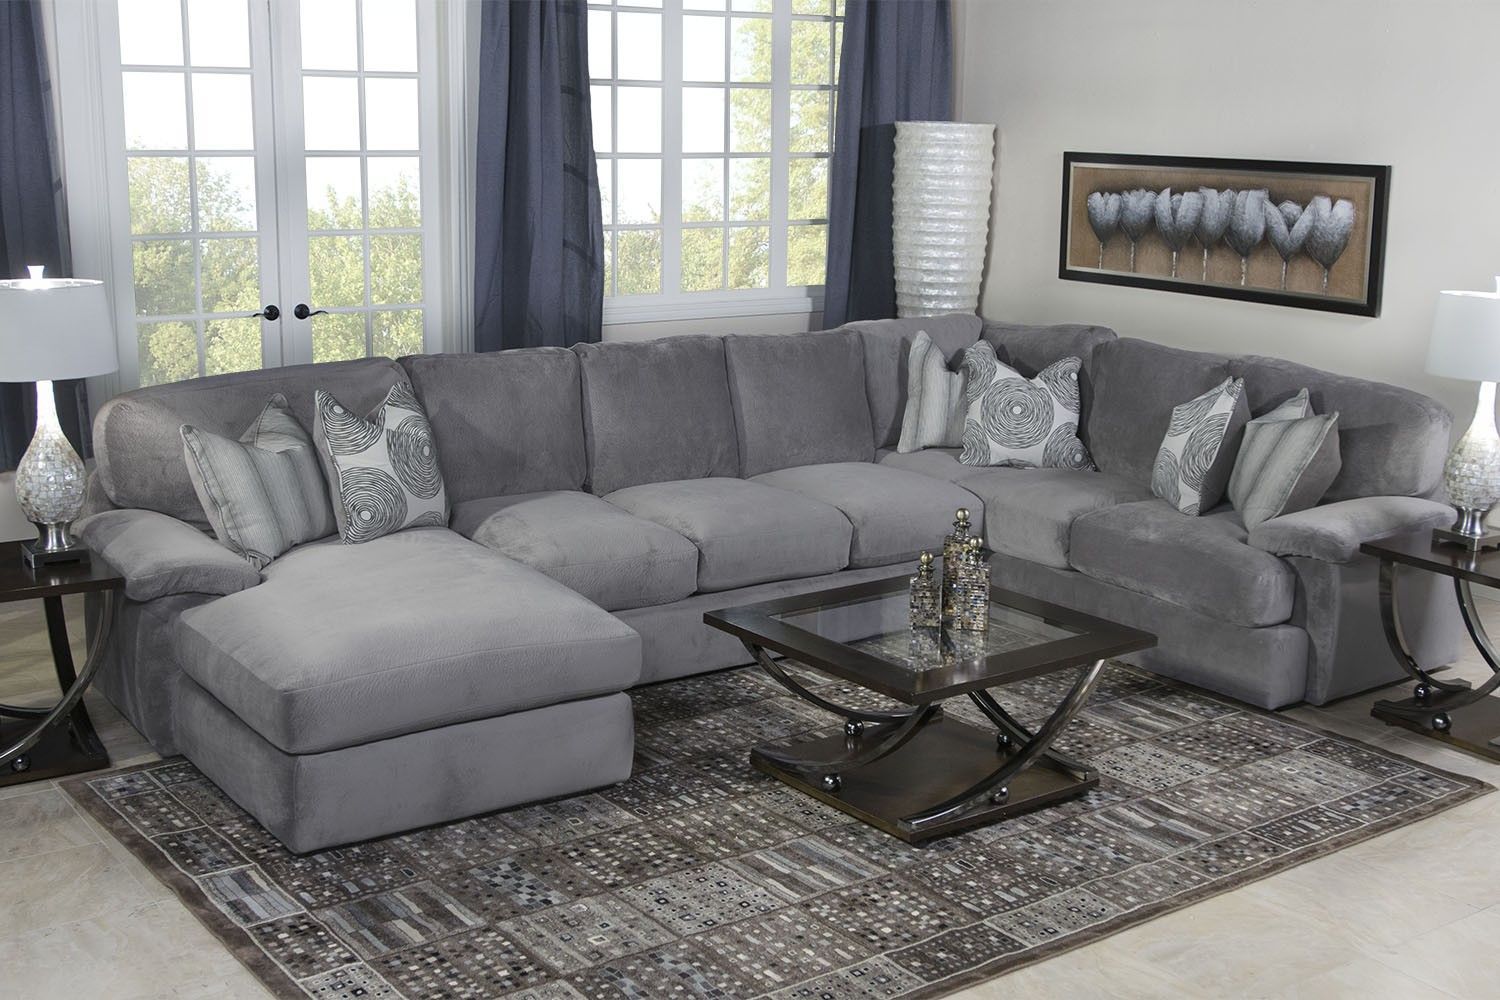 Key west sectional living room in gray living room mor for Living room layout with sectional